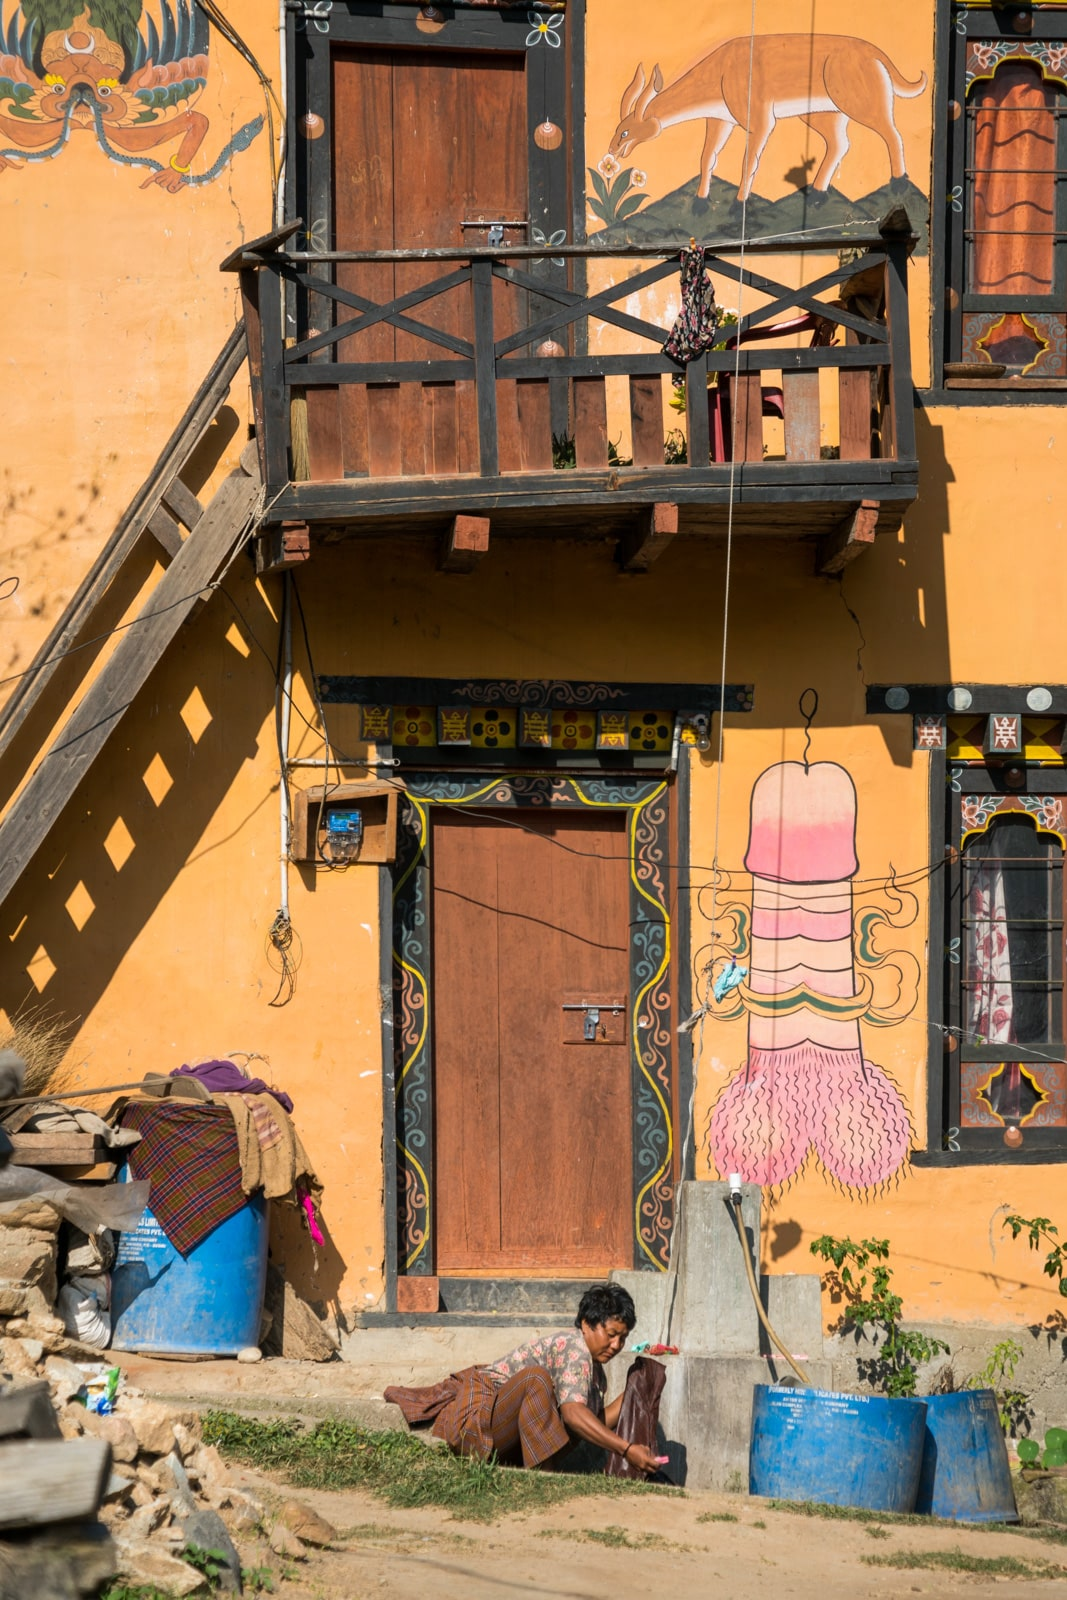 A woman doing laundry in front of a house with a painted penis on it in Punakha, Bhutan.